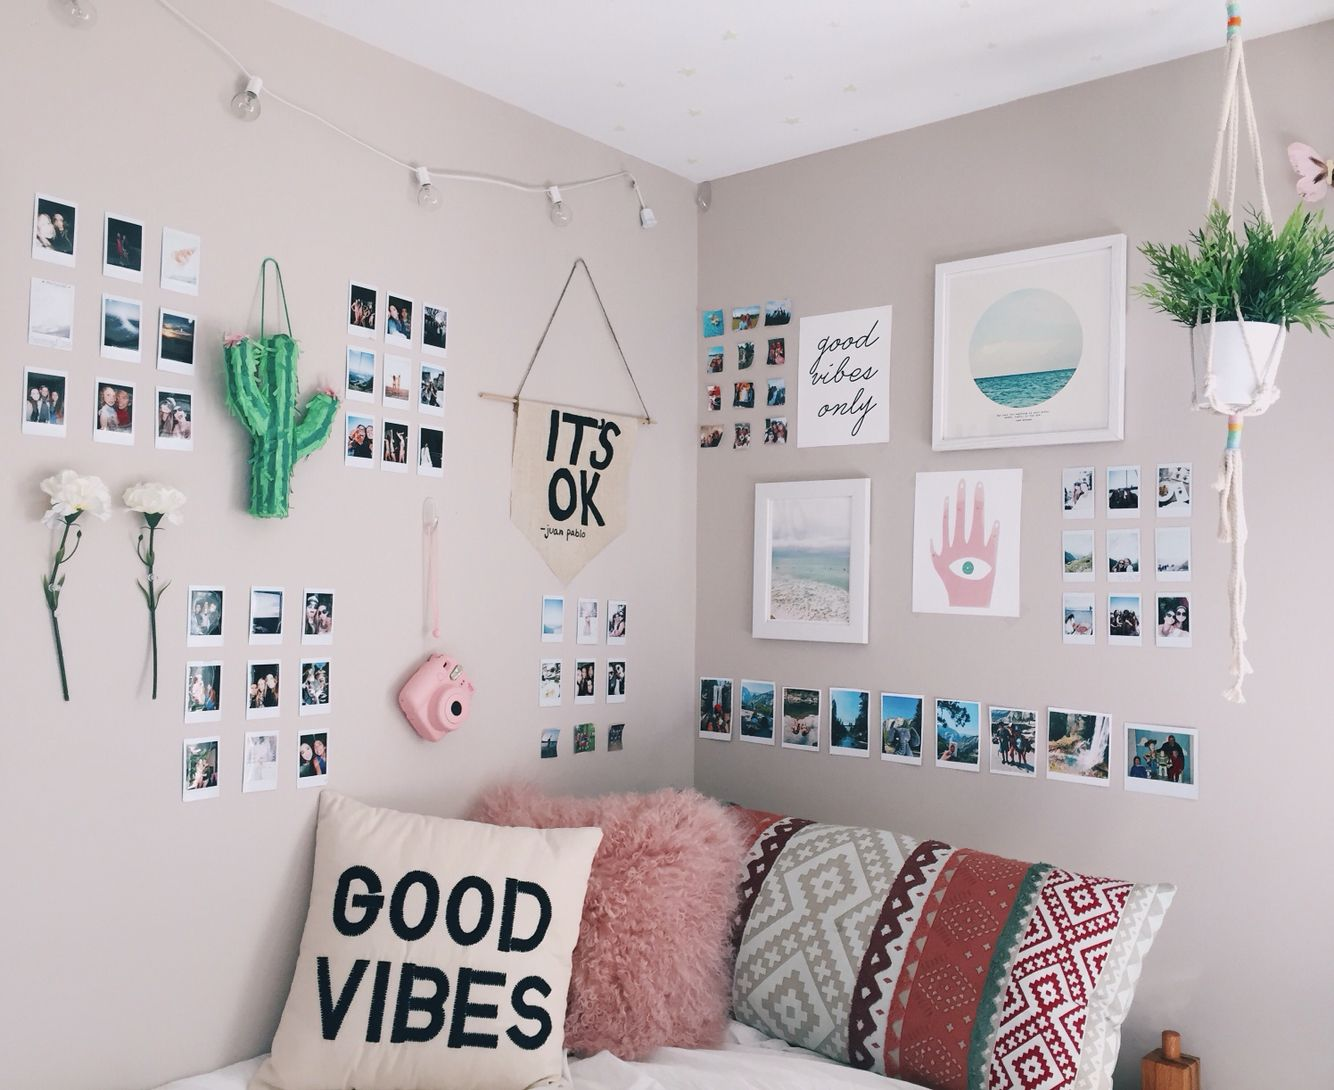 Teenage Girl Wall Decor Ideas Pinterest Em M Em 2019 Quartos Quarto Decorado E